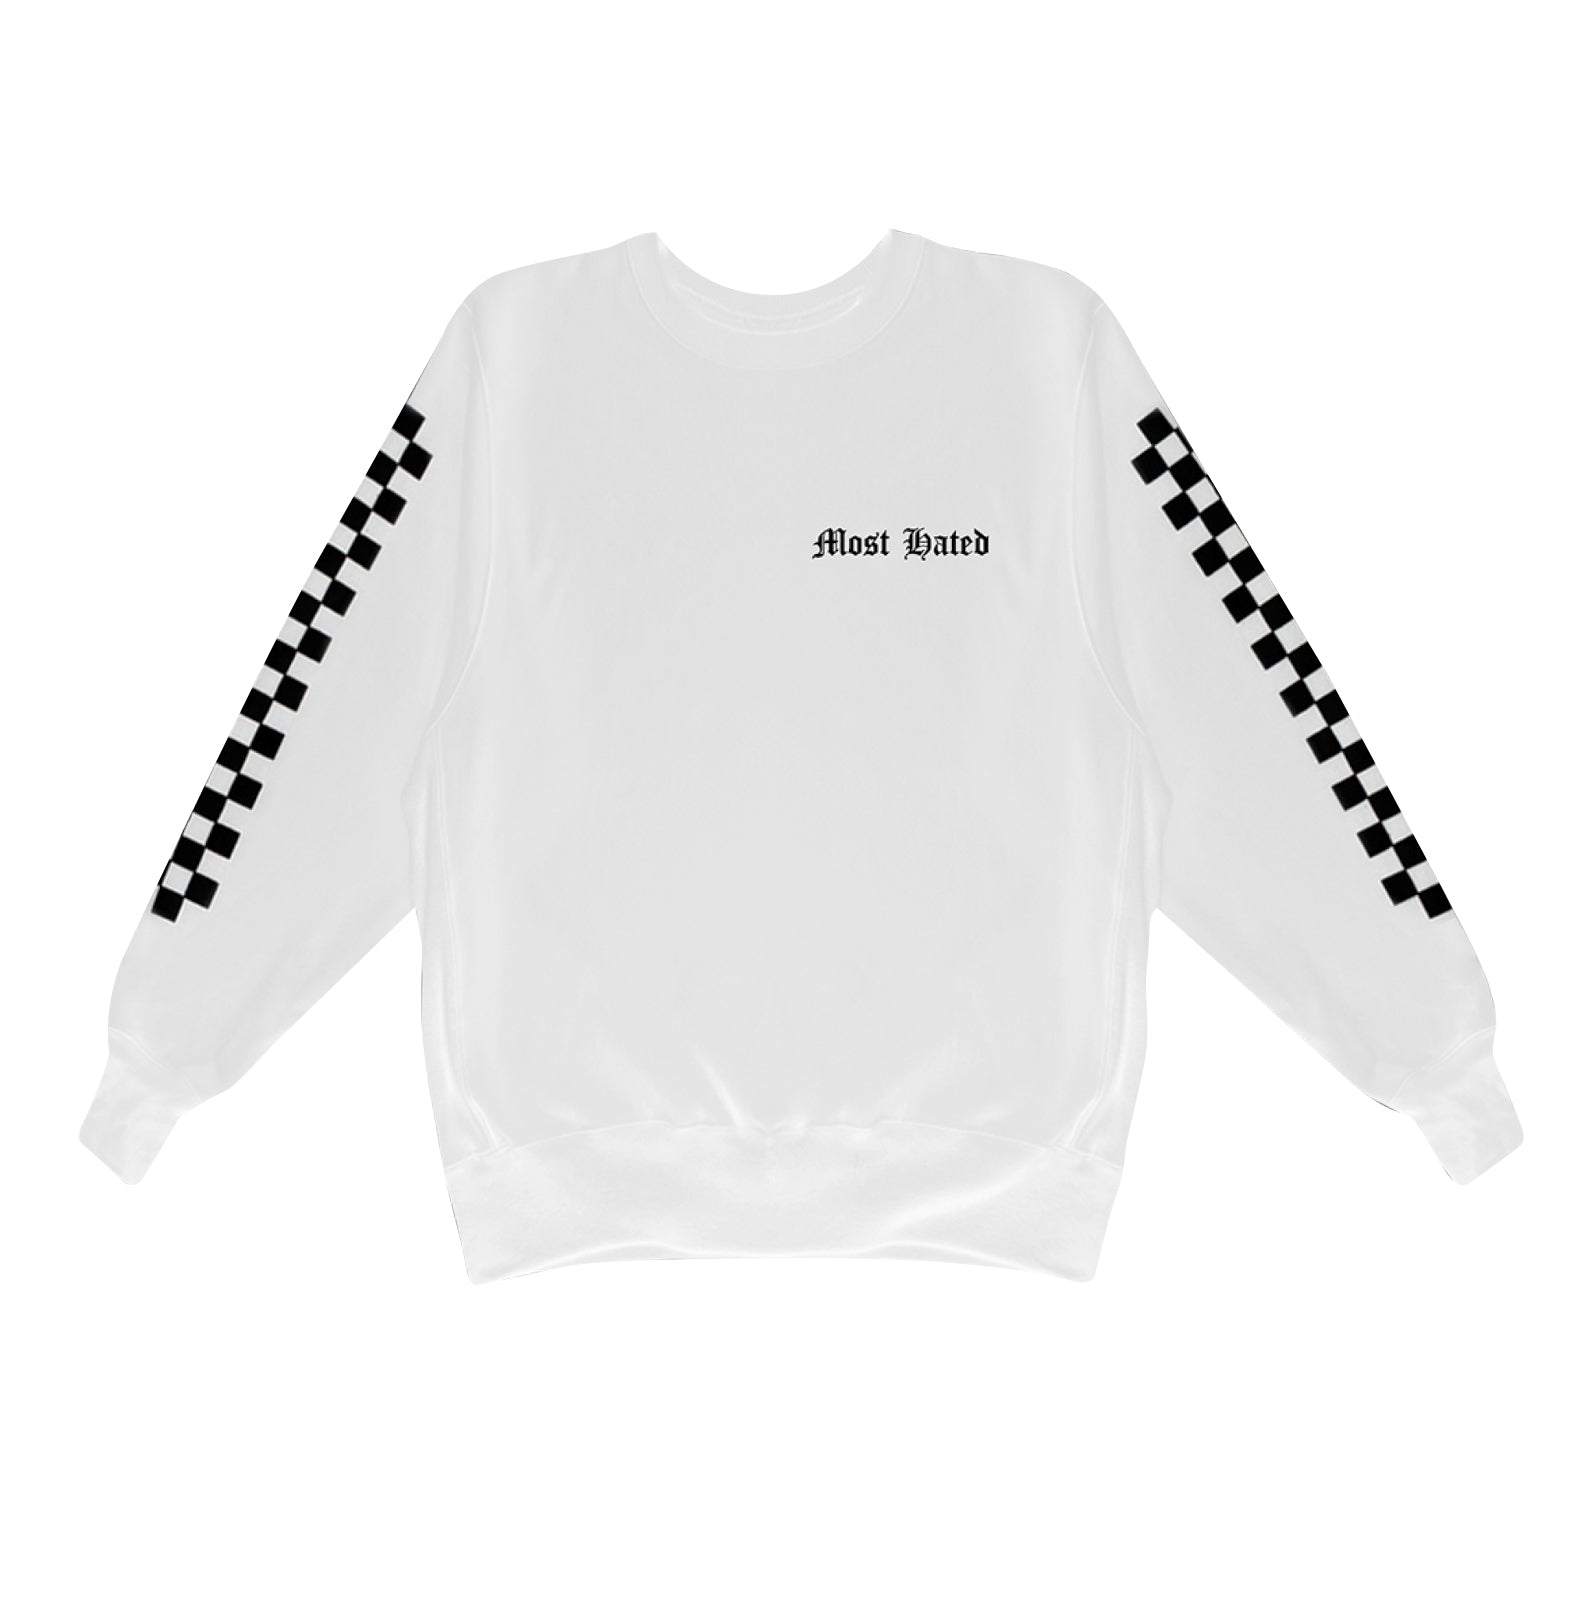 Most Hated Racing Crewneck - White